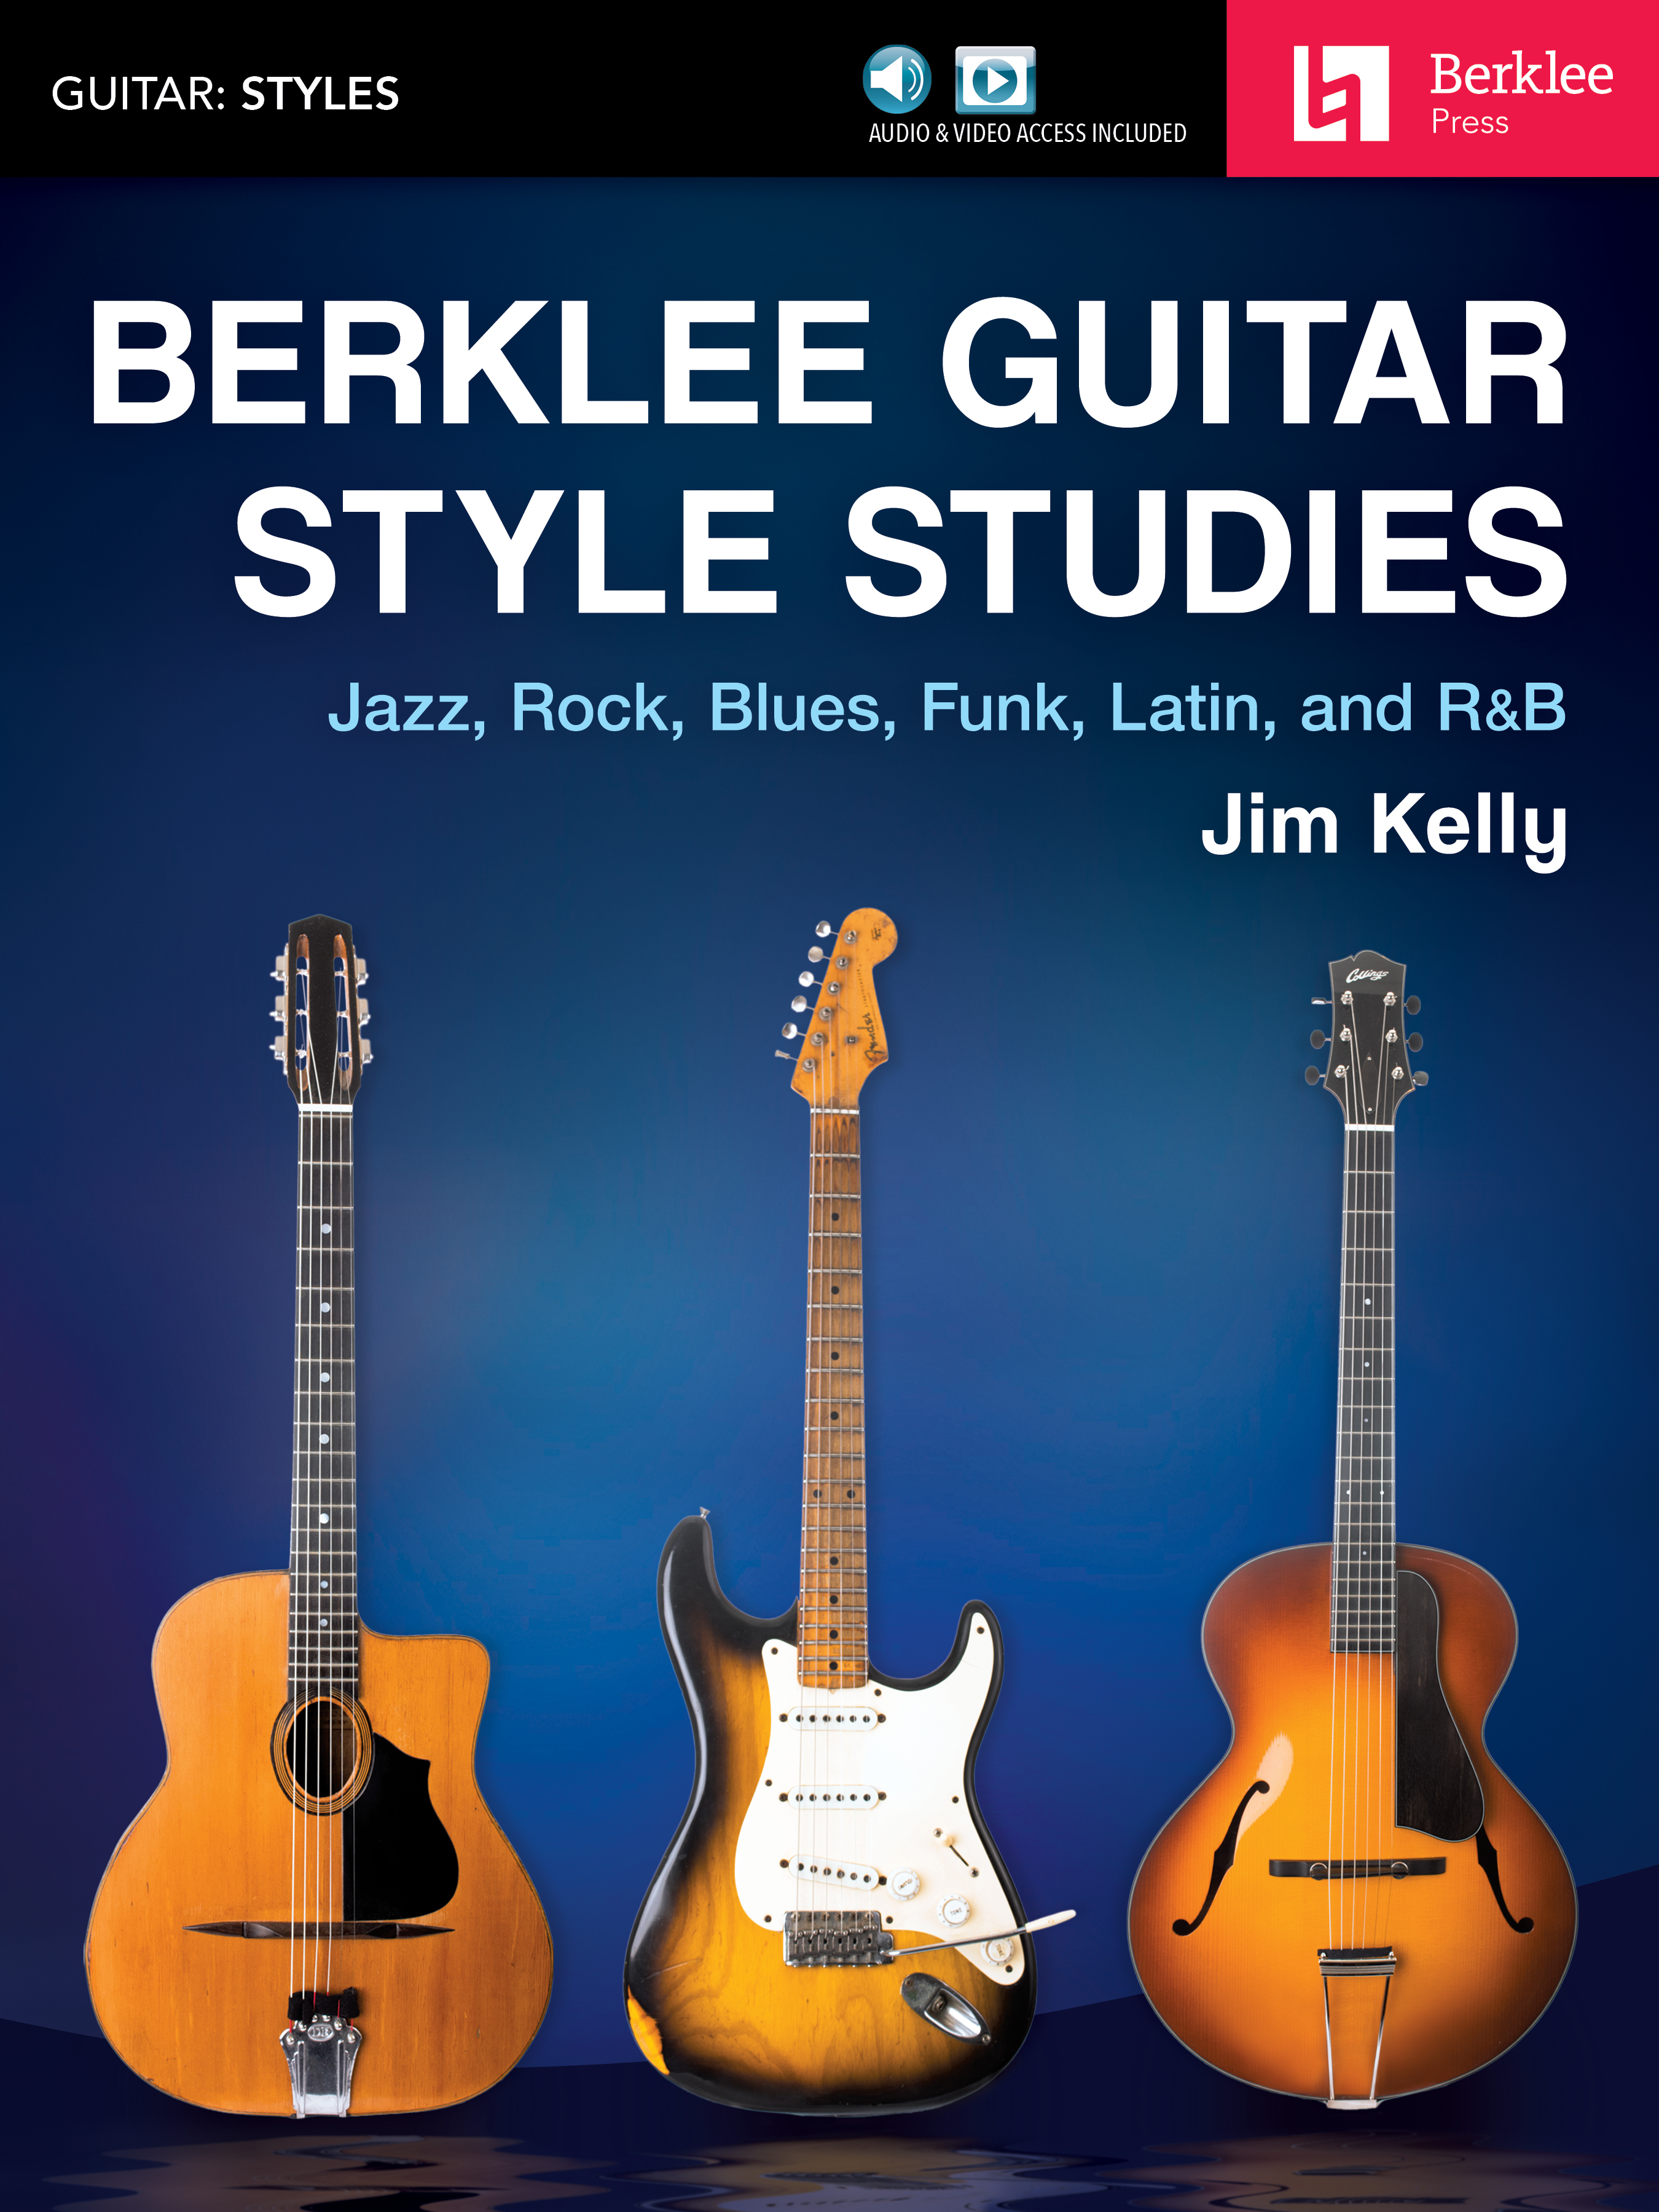 Guitar Berklee Press